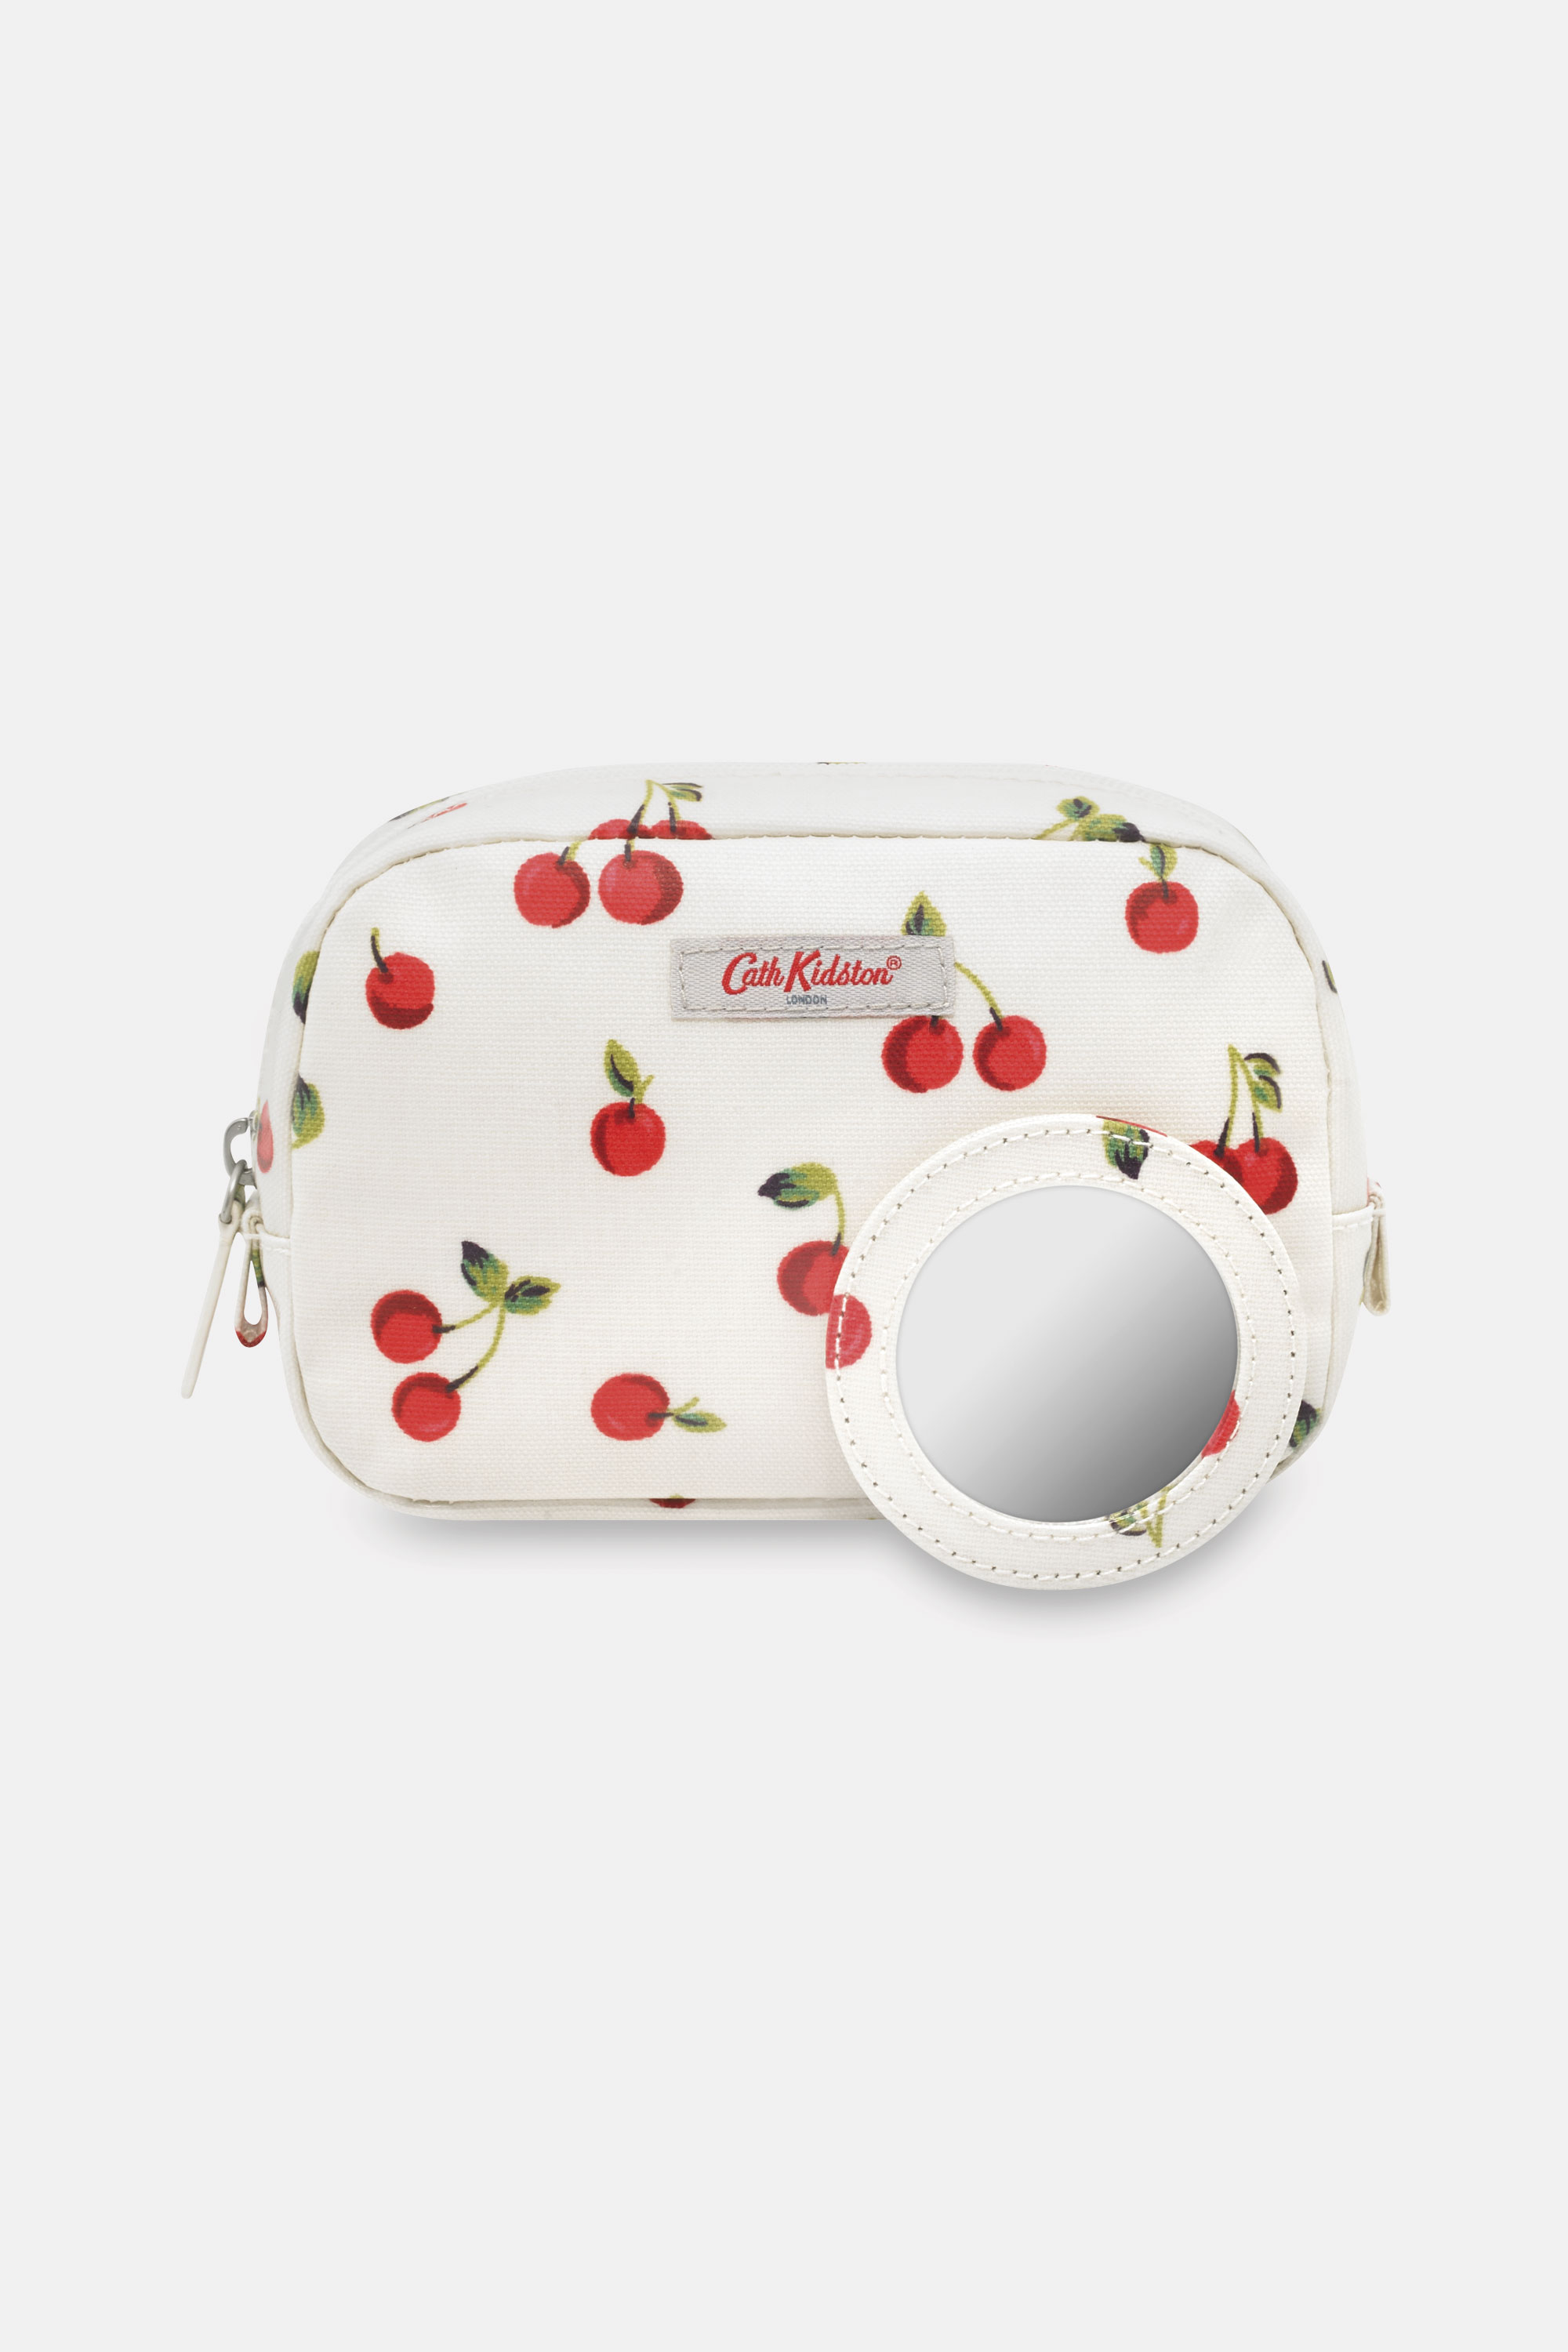 Cath Kidston Cherries Classic Make Up Case in Ivory